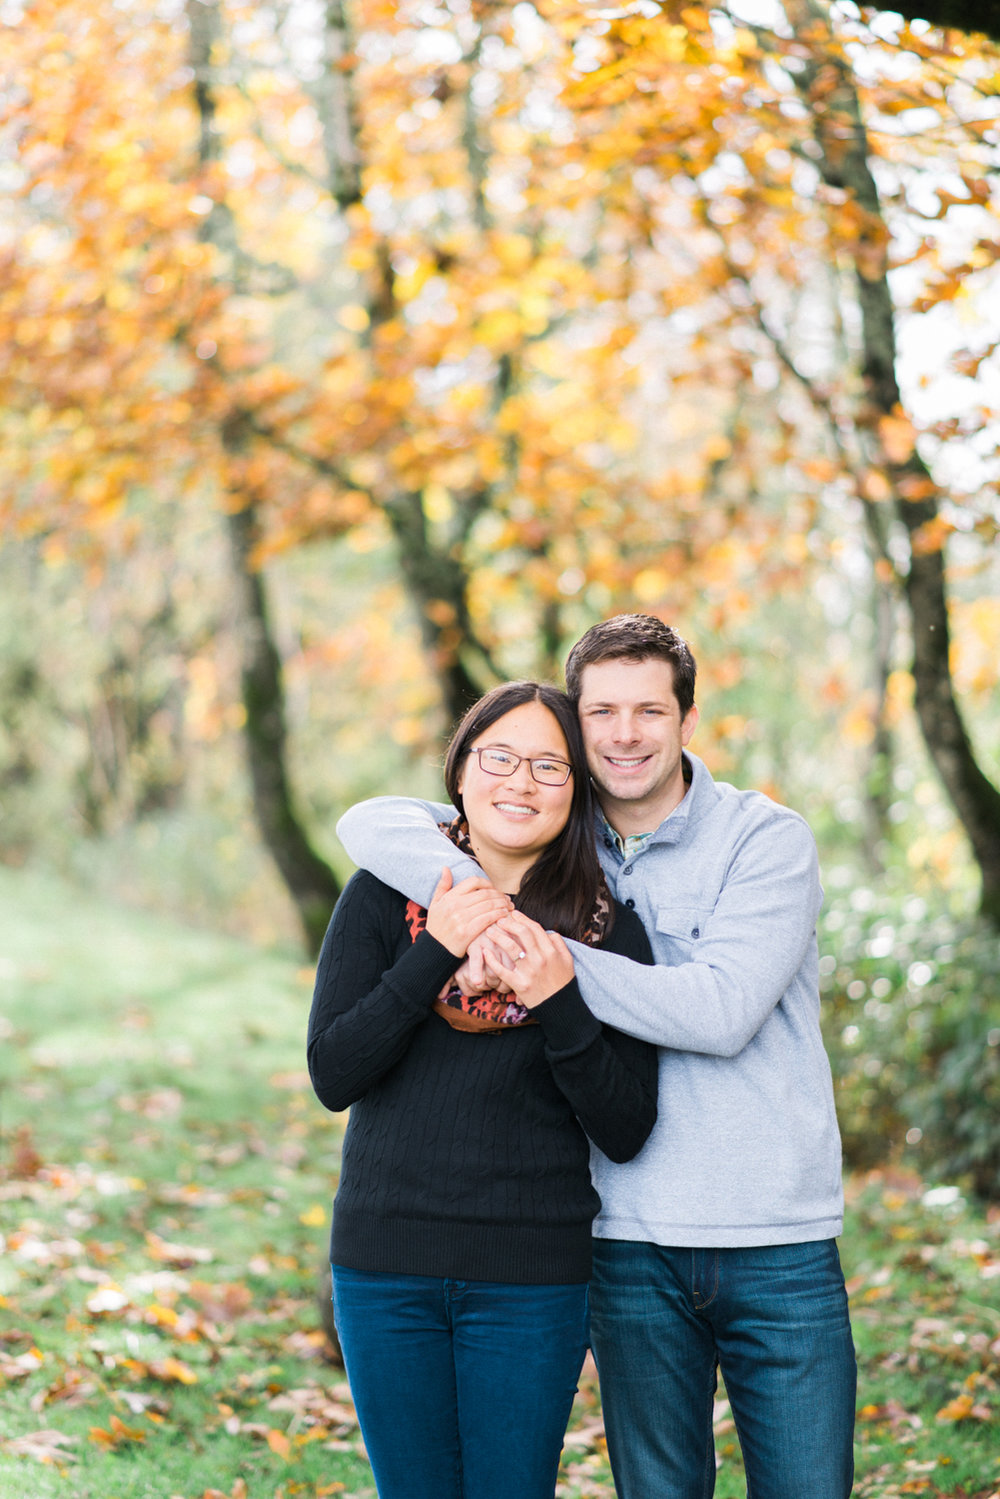 portland-engagement-columbia-river-gorge-latourell-waterfall-autumn-fall-crown-point-shelley-marie-photo-13.jpg